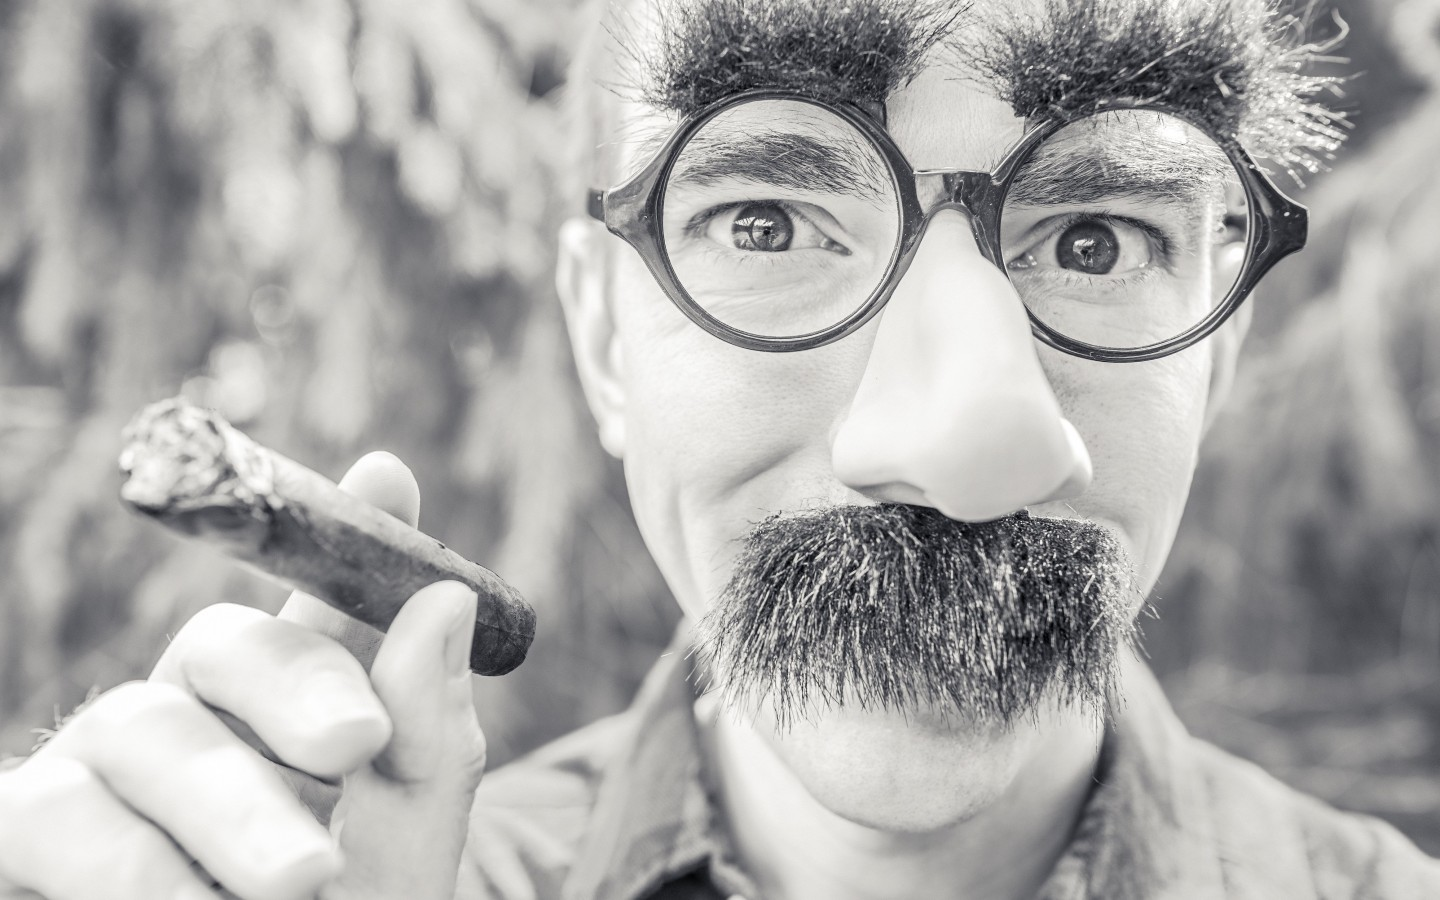 Groucho Glasses Man Wallpaper for Desktop 1440x900